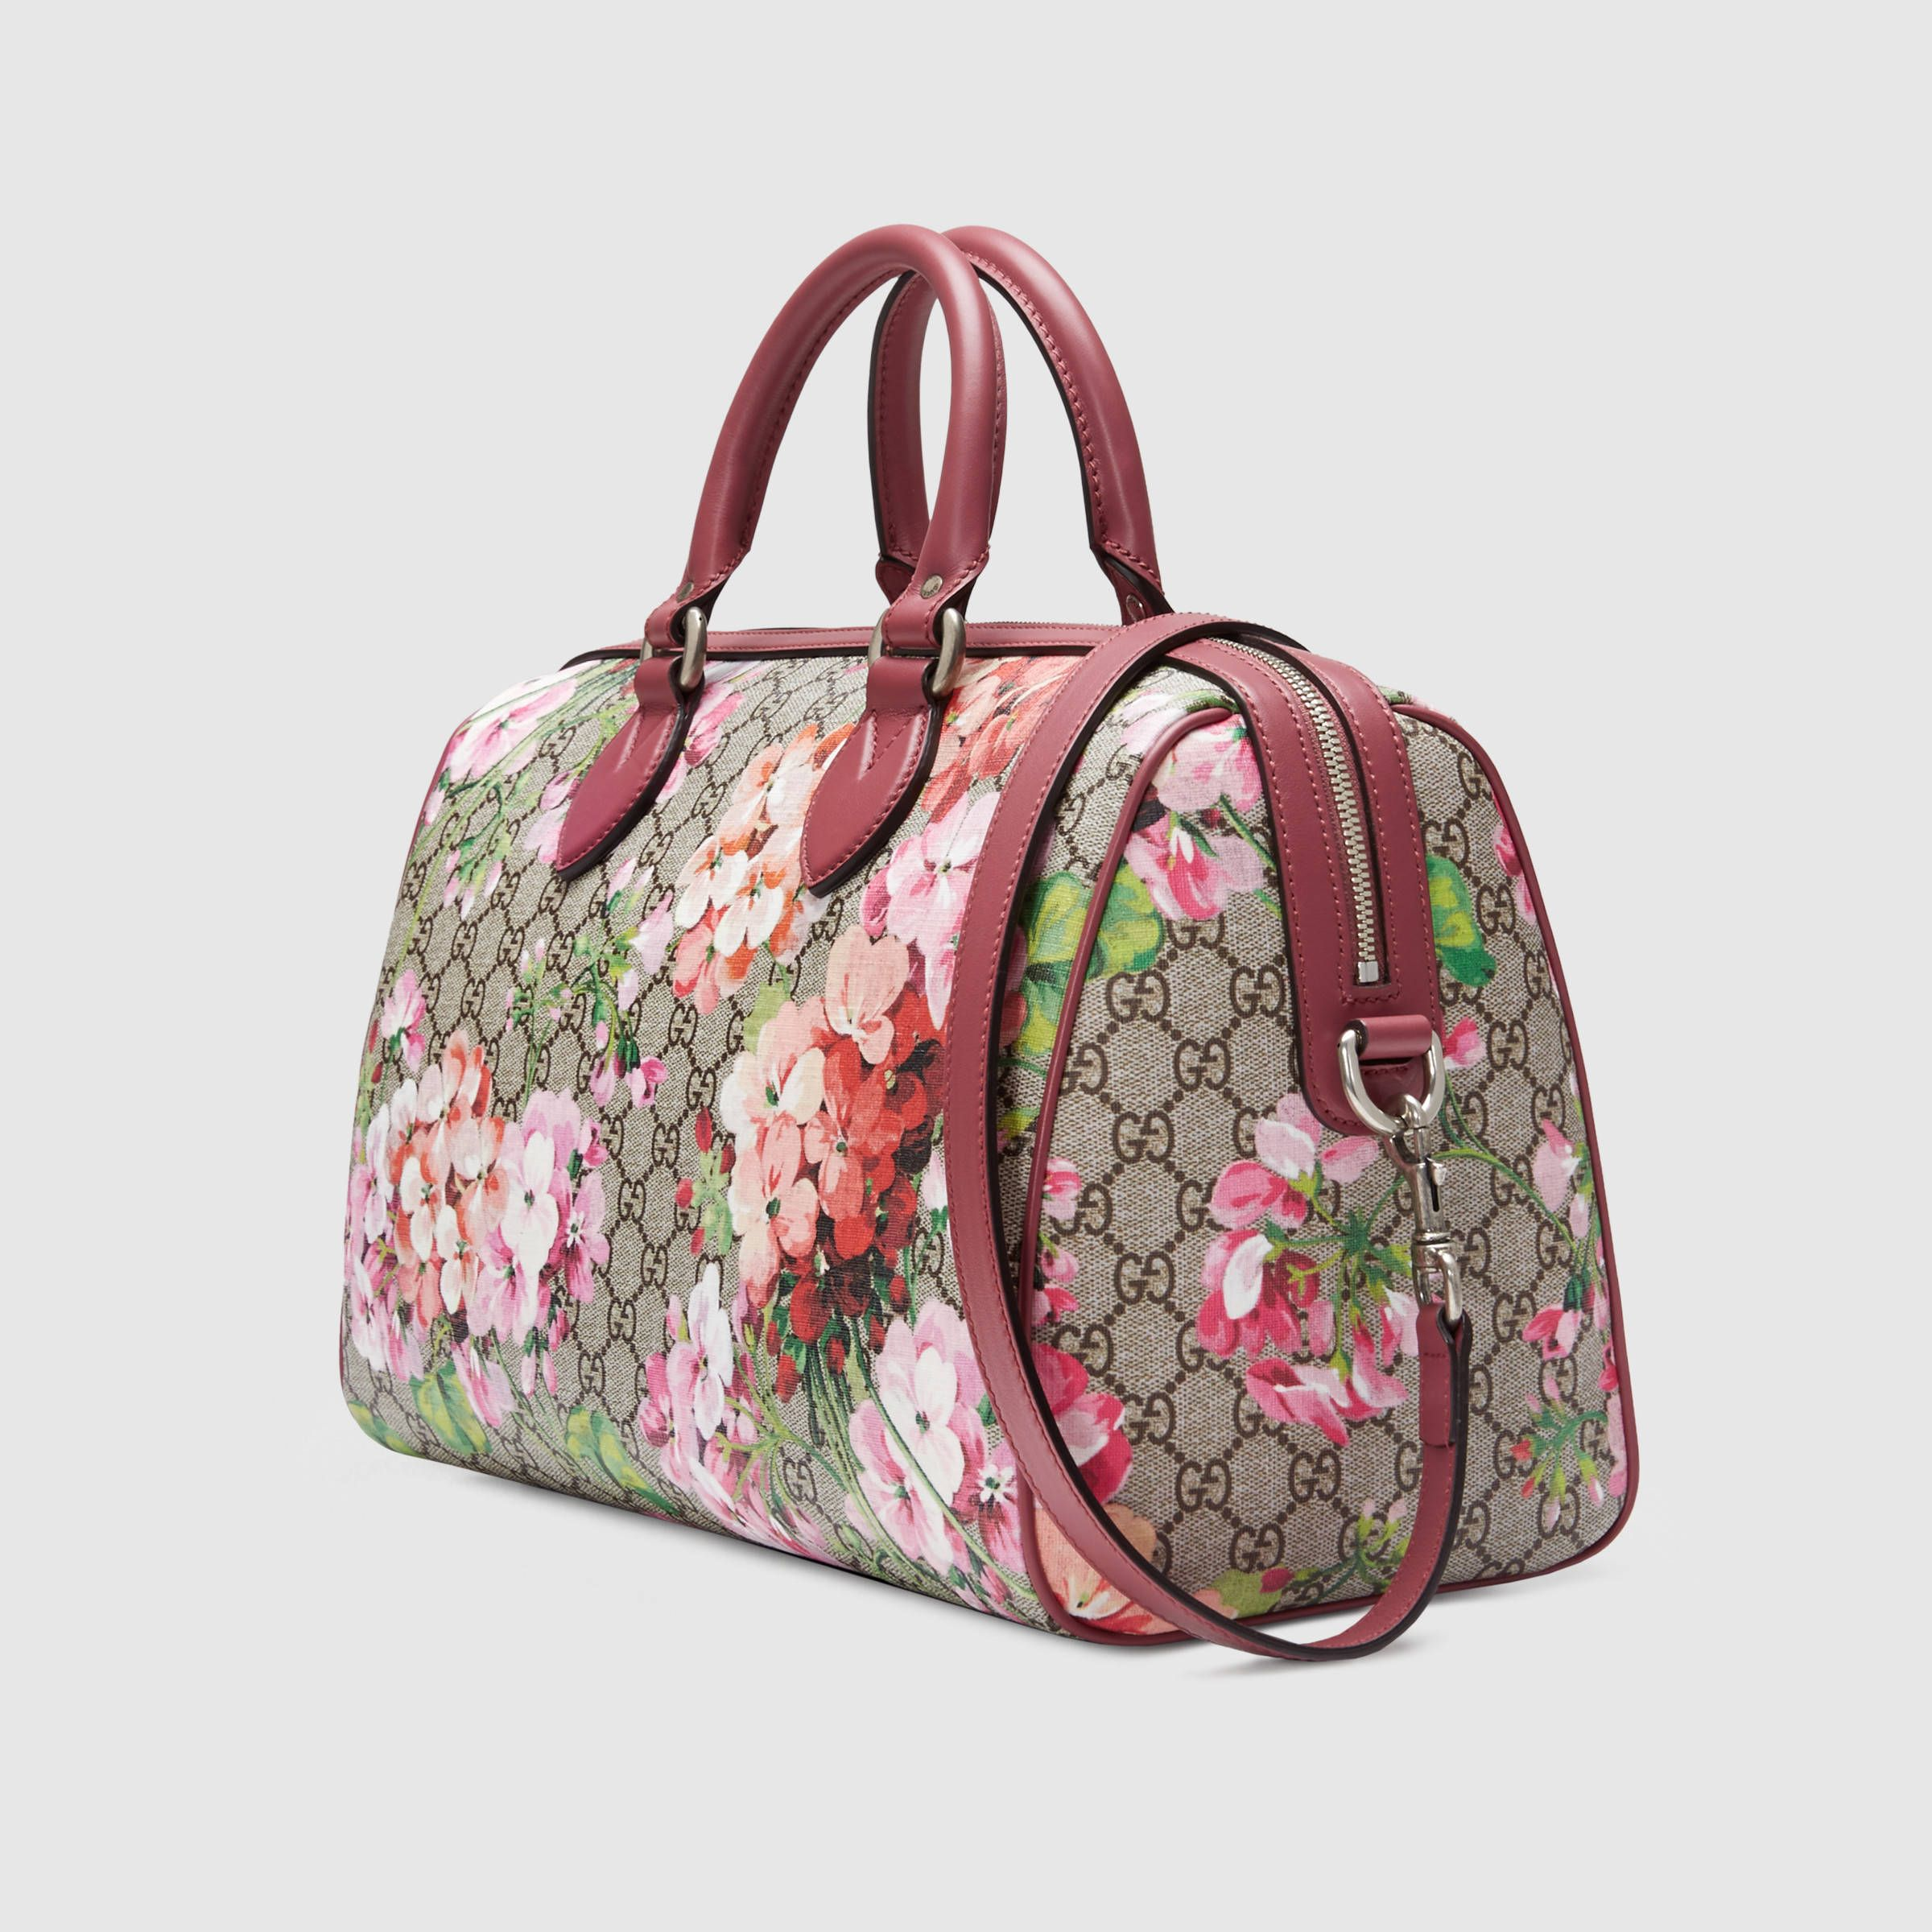 c52c09525bdd Blooms GG Supreme top handle bag - Gucci Women s Top Handles   Boston Bags  409527KU2IN8693